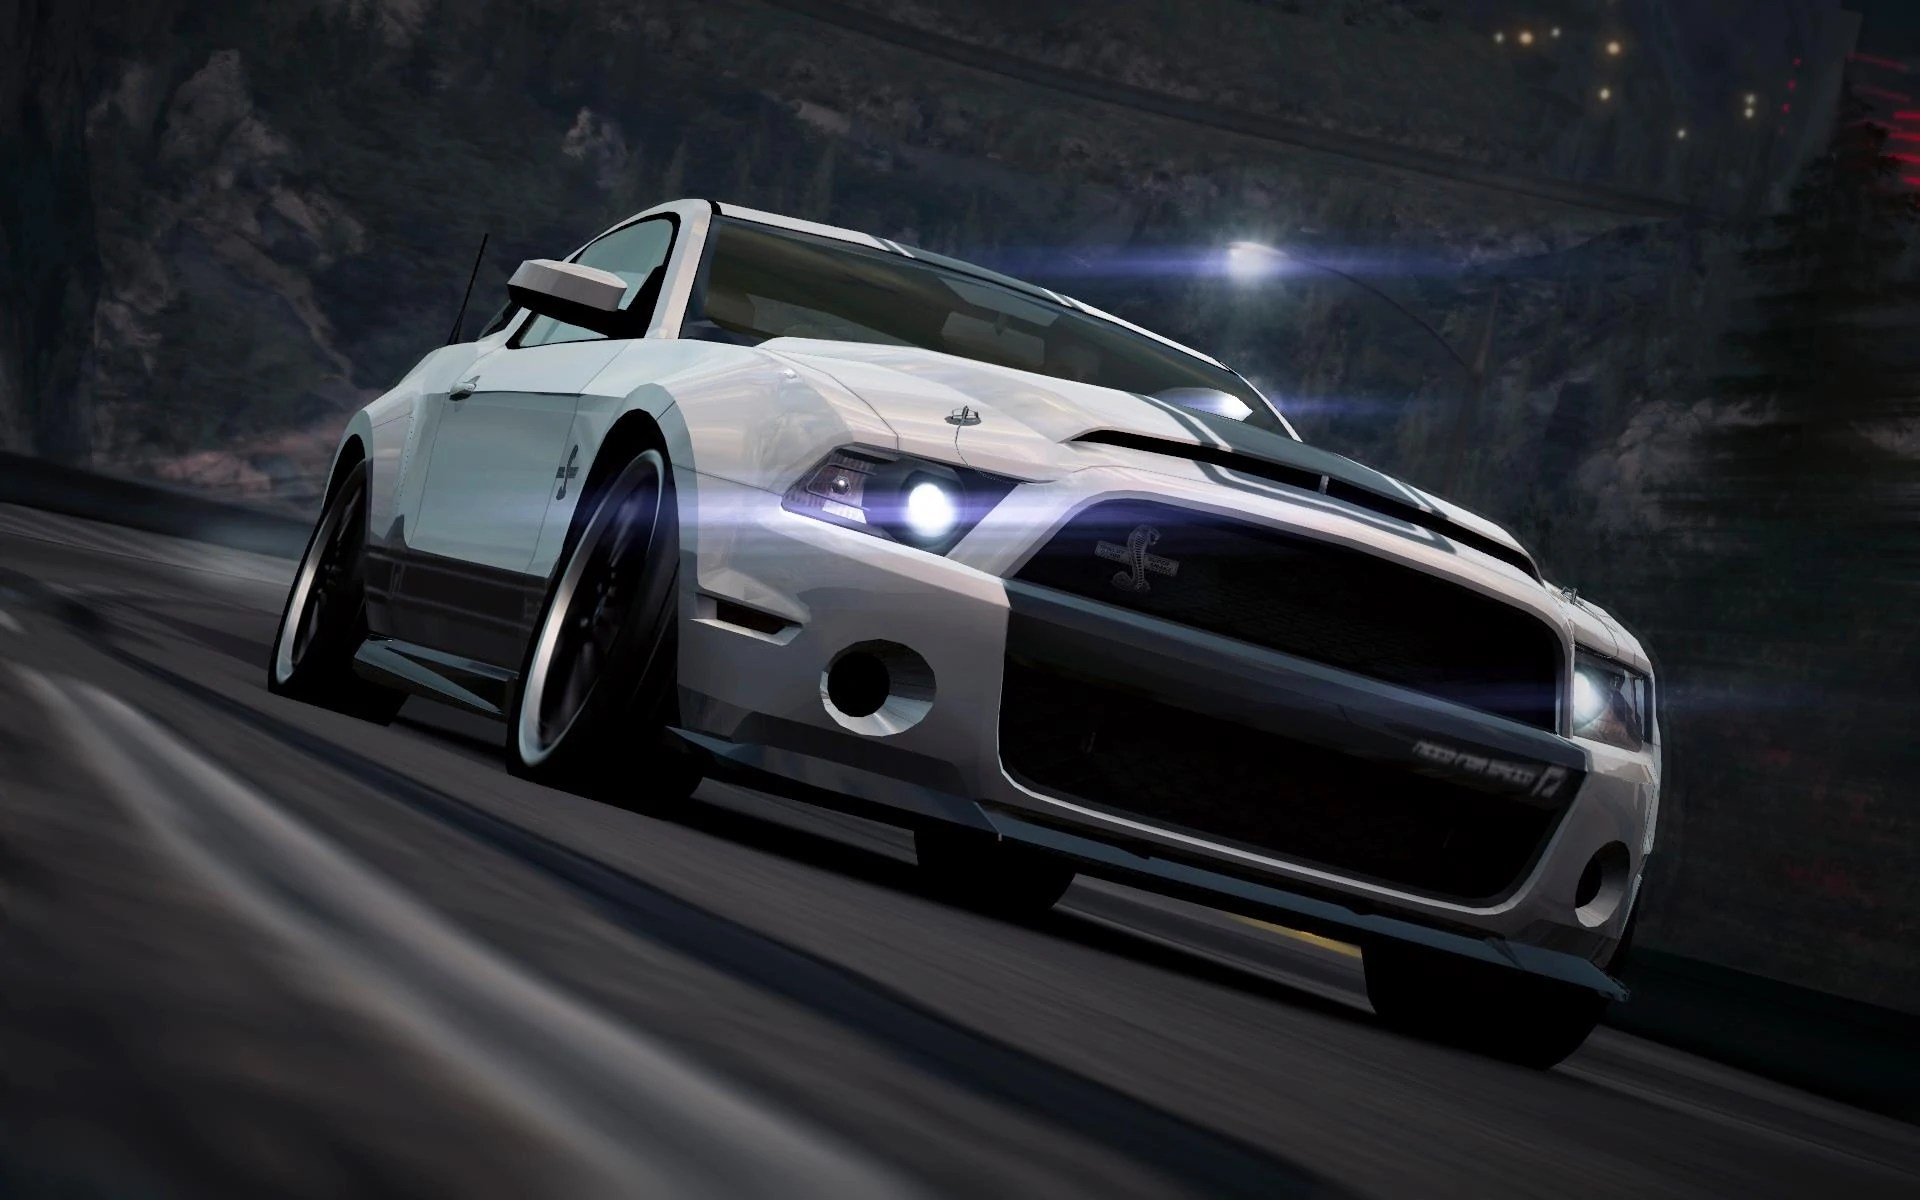 Ford Shelby Gt500 Super Snake Nfs World Wiki Fandom Powered By Wikia